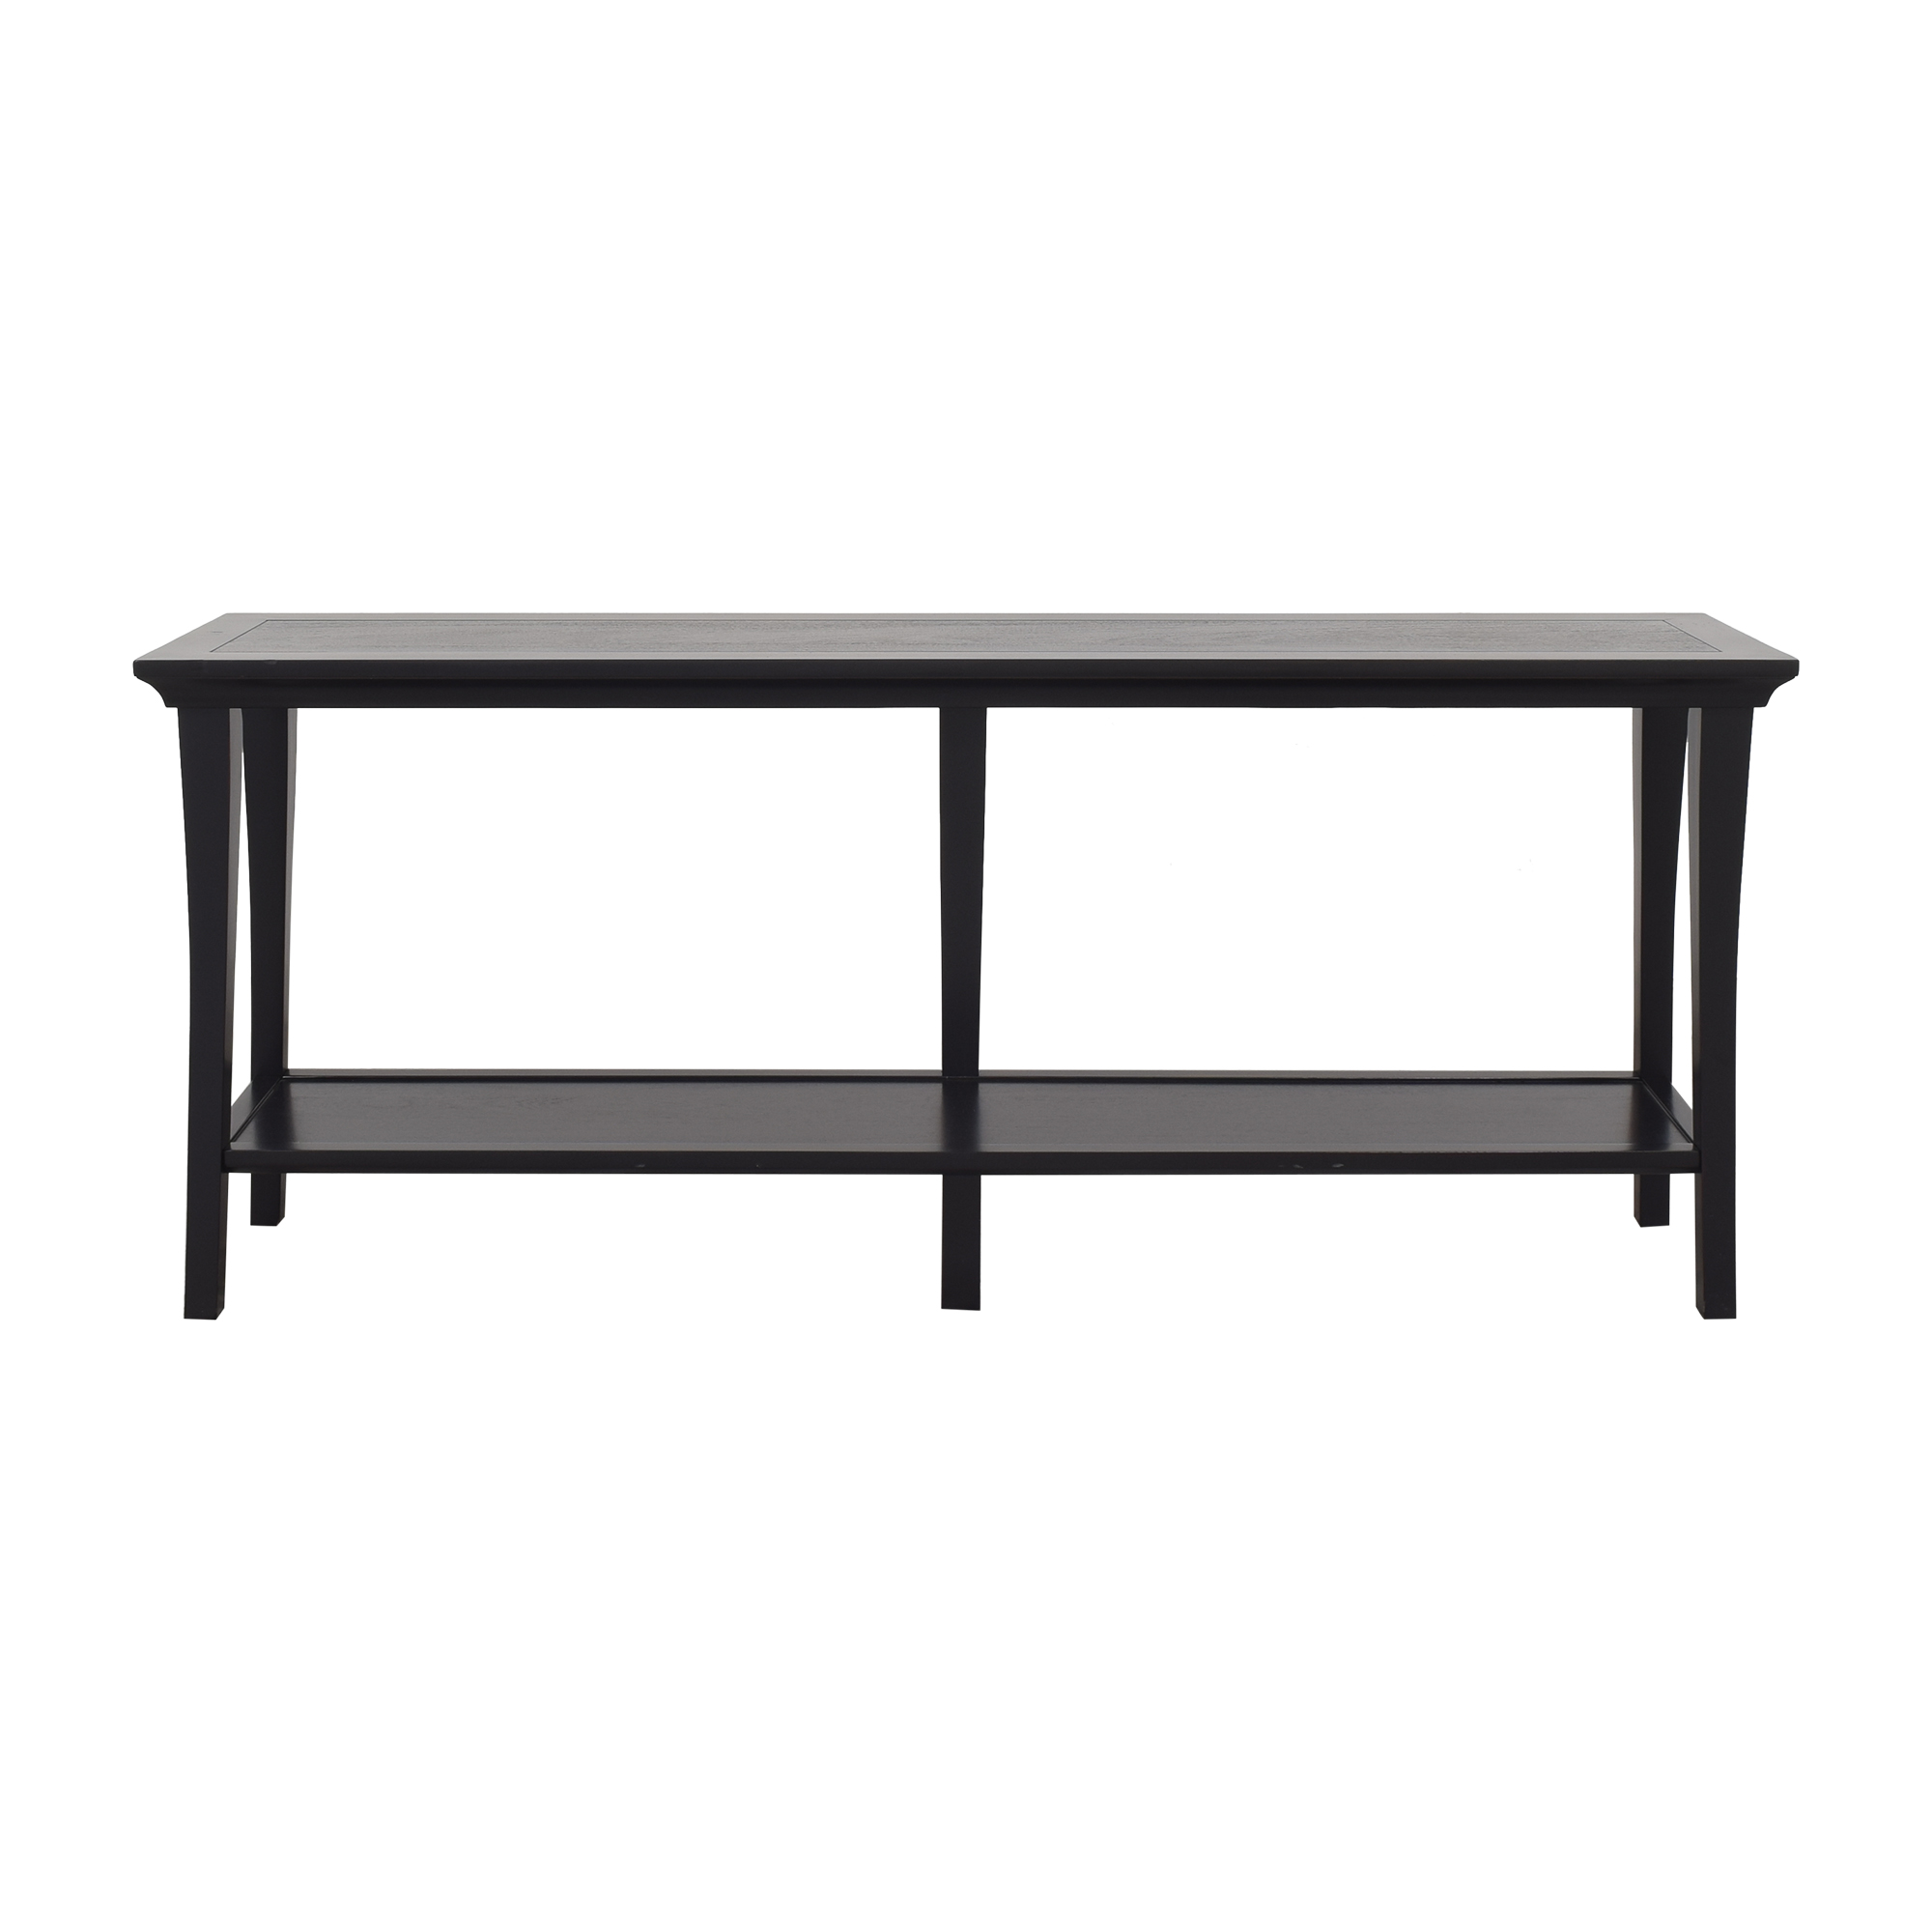 Crate & Barrel Crate & Barrel Console Table nyc